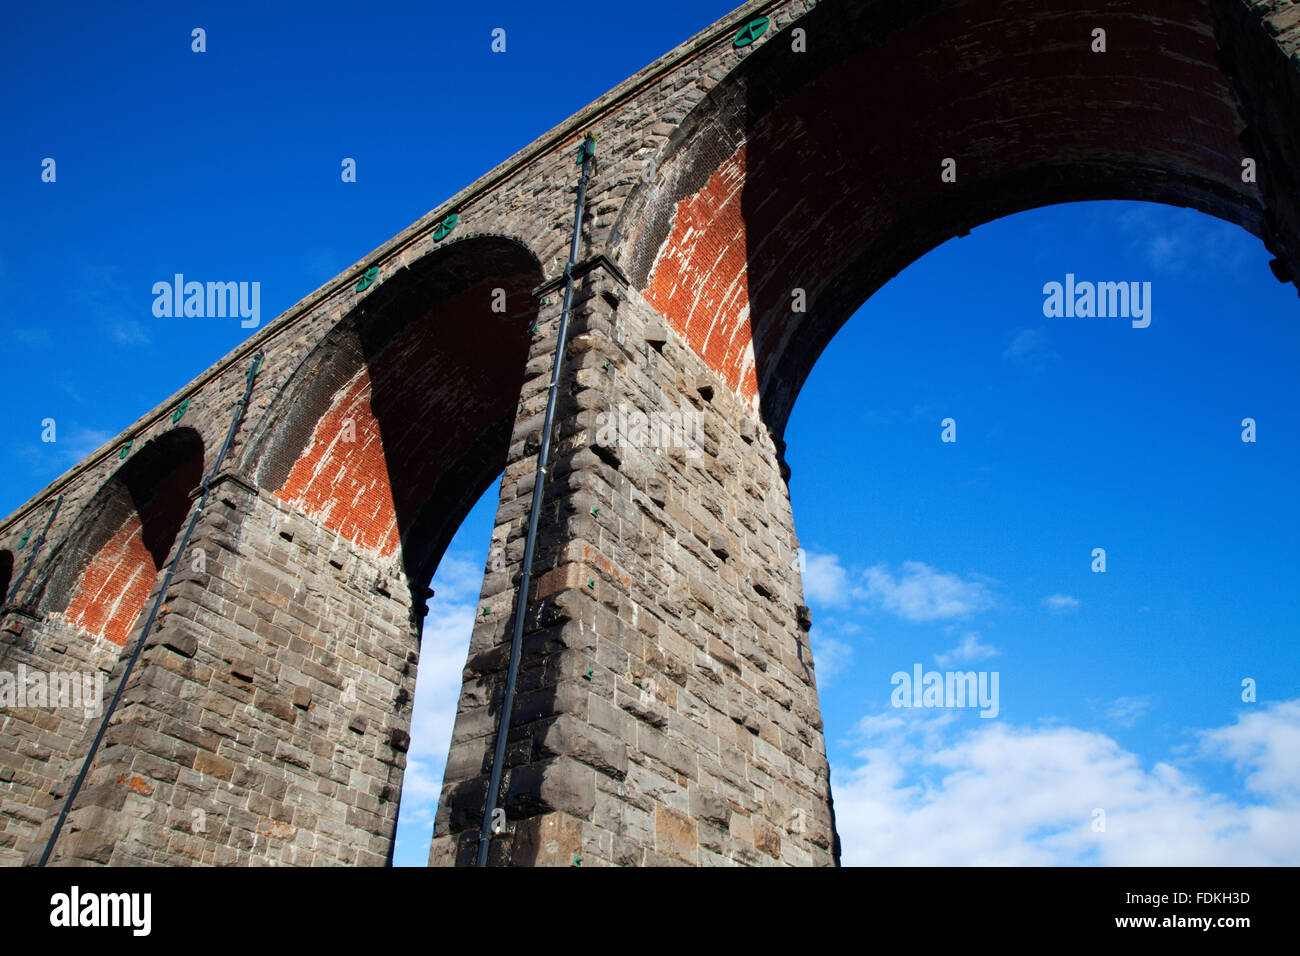 Arches of the Ribblehead Viaduct Ribblehead Yorkshire Dales England - Stock Image